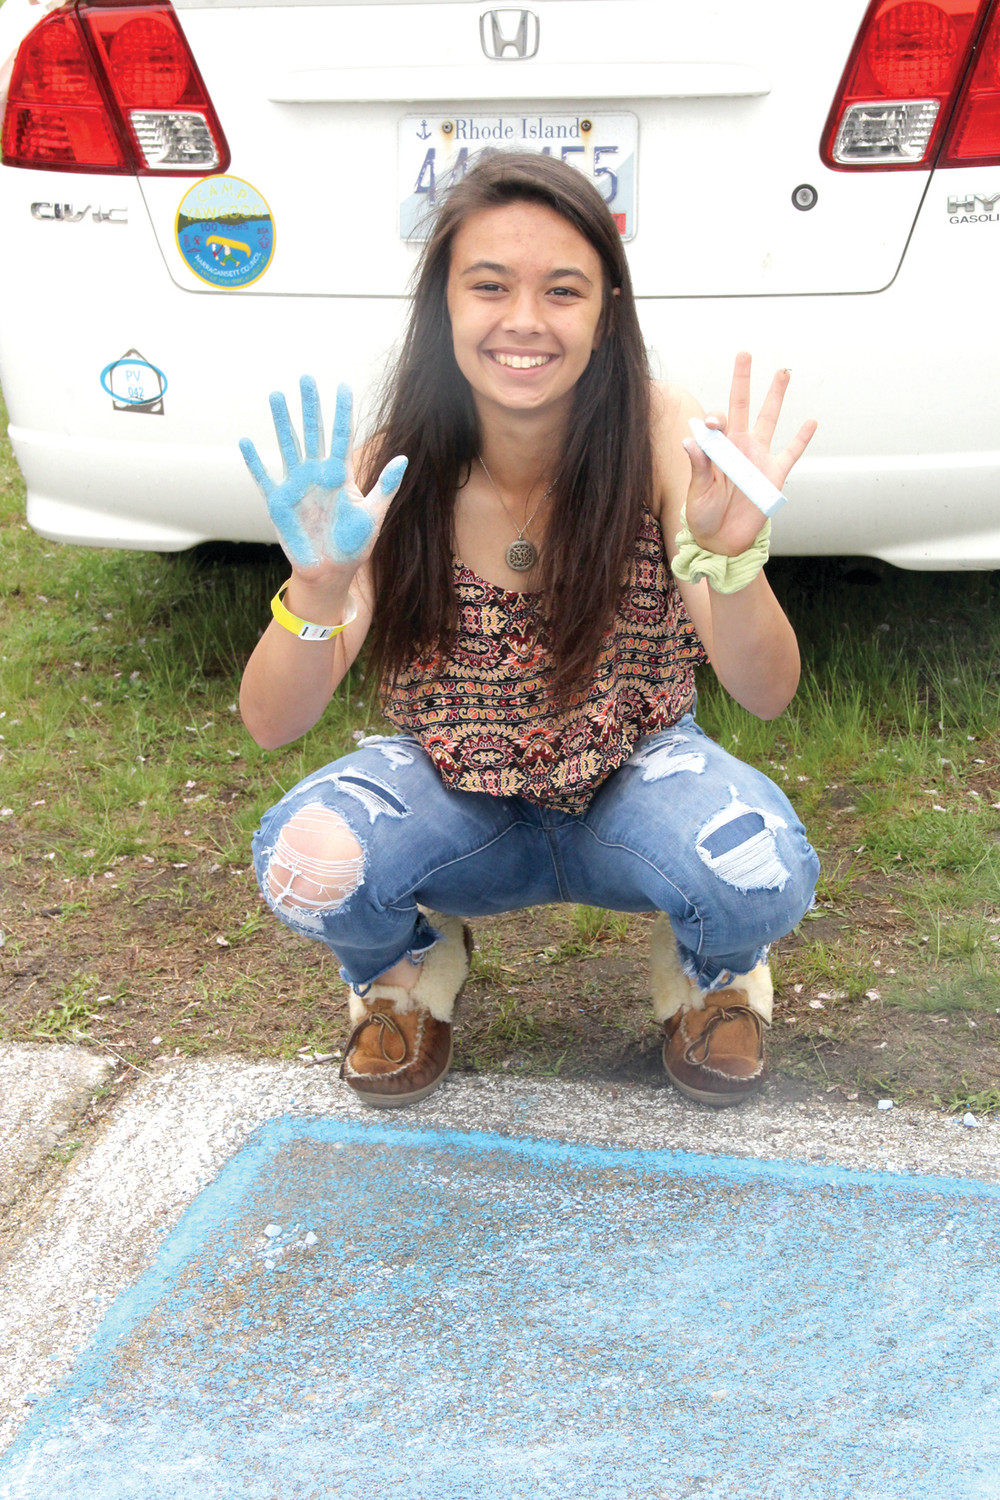 BLUE EVERYWHERE: Destinee Charette was blue by the time she was finished on her sidewalk art.